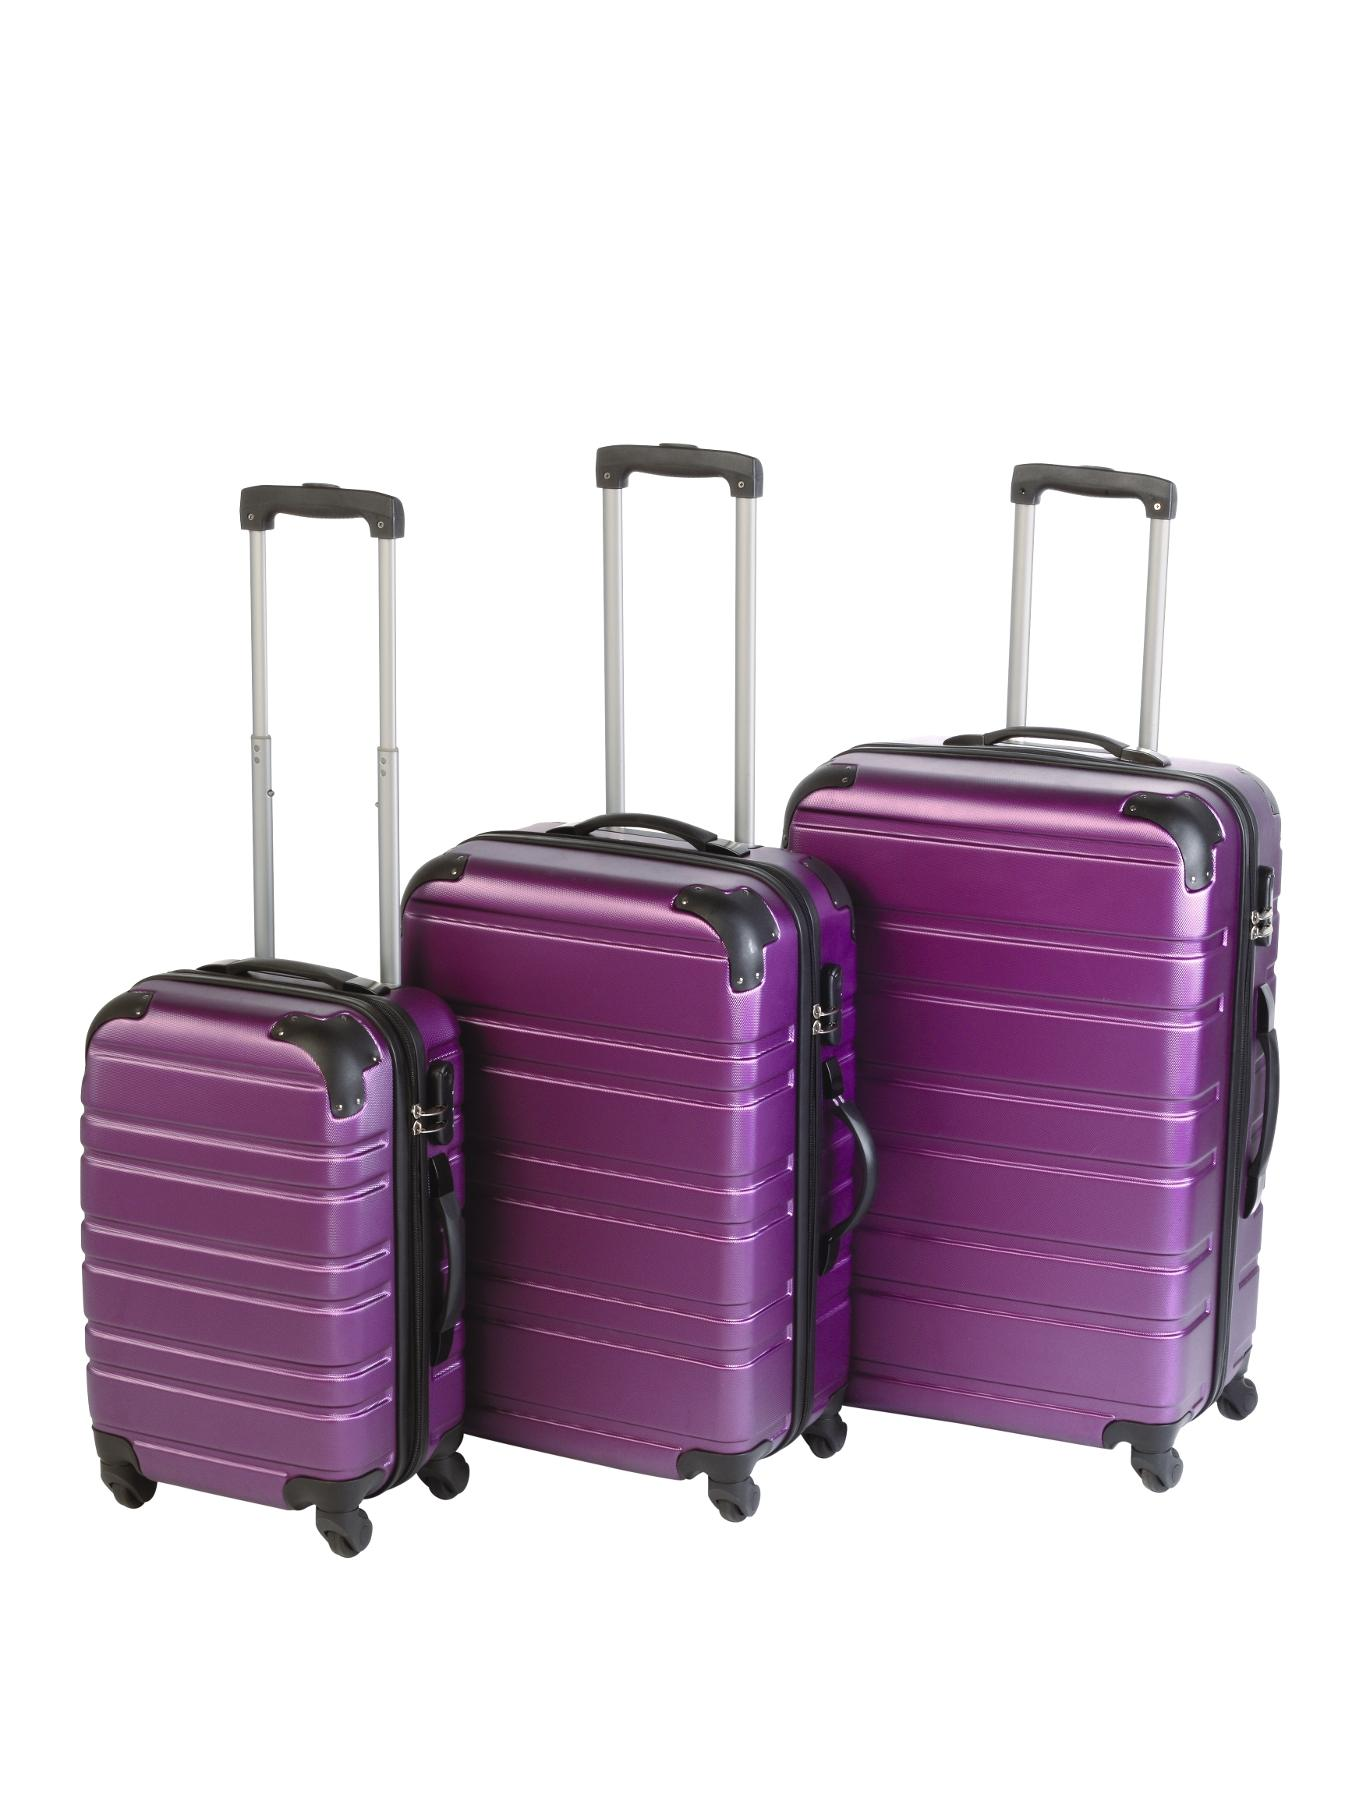 3-Piece ABS Luggage Set - Plum